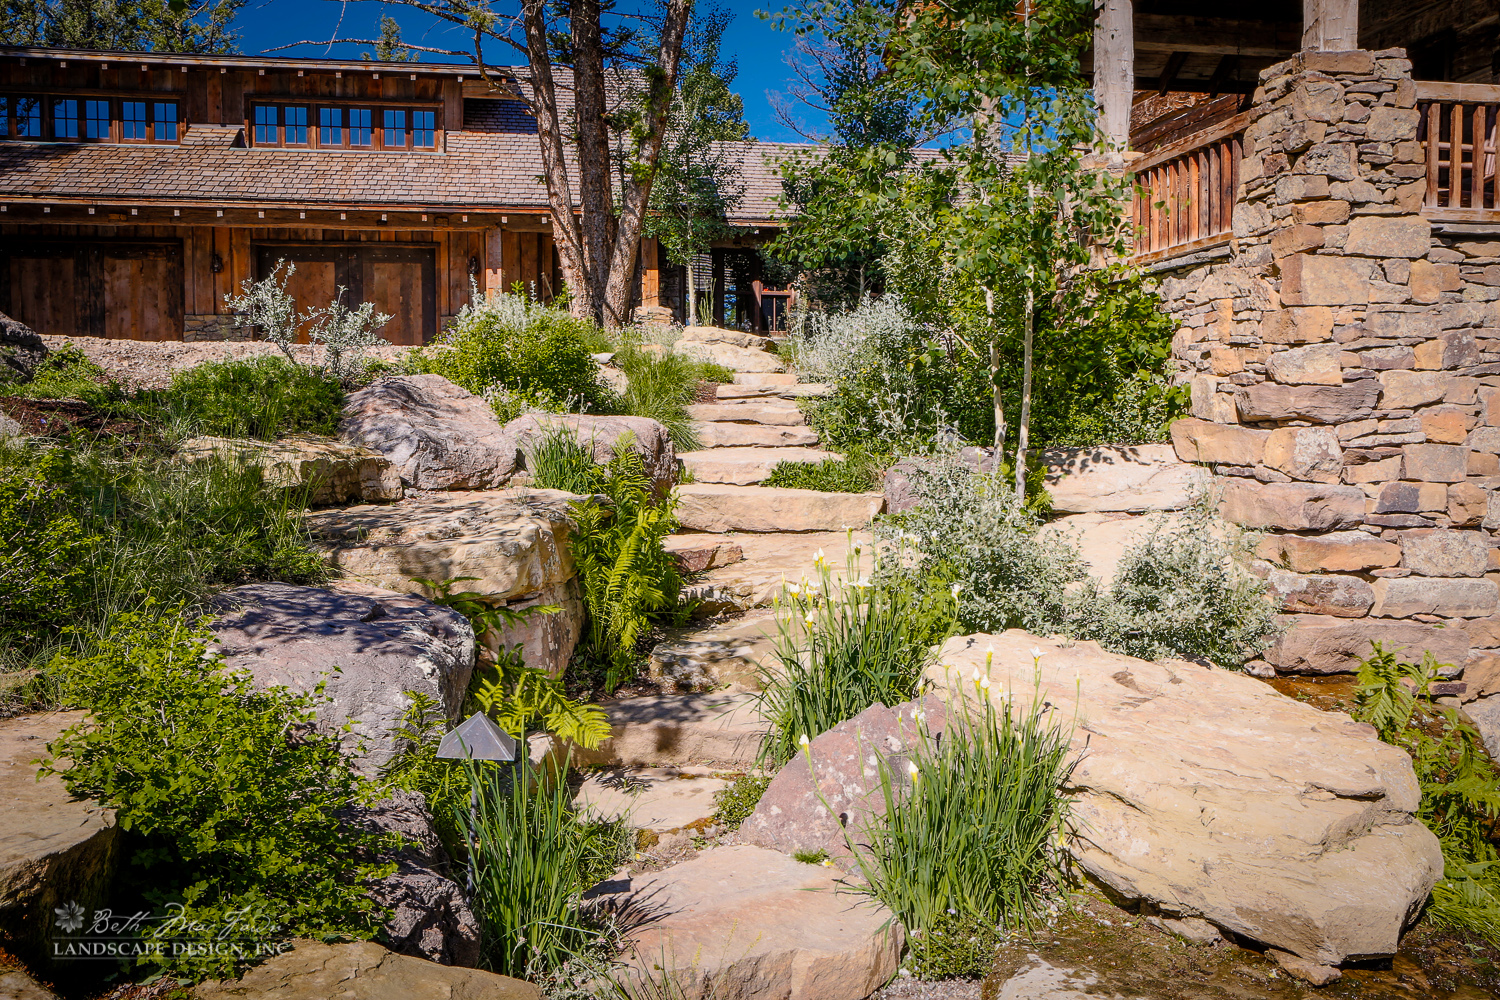 Photo of natural looking rocks and native plants with building in the background